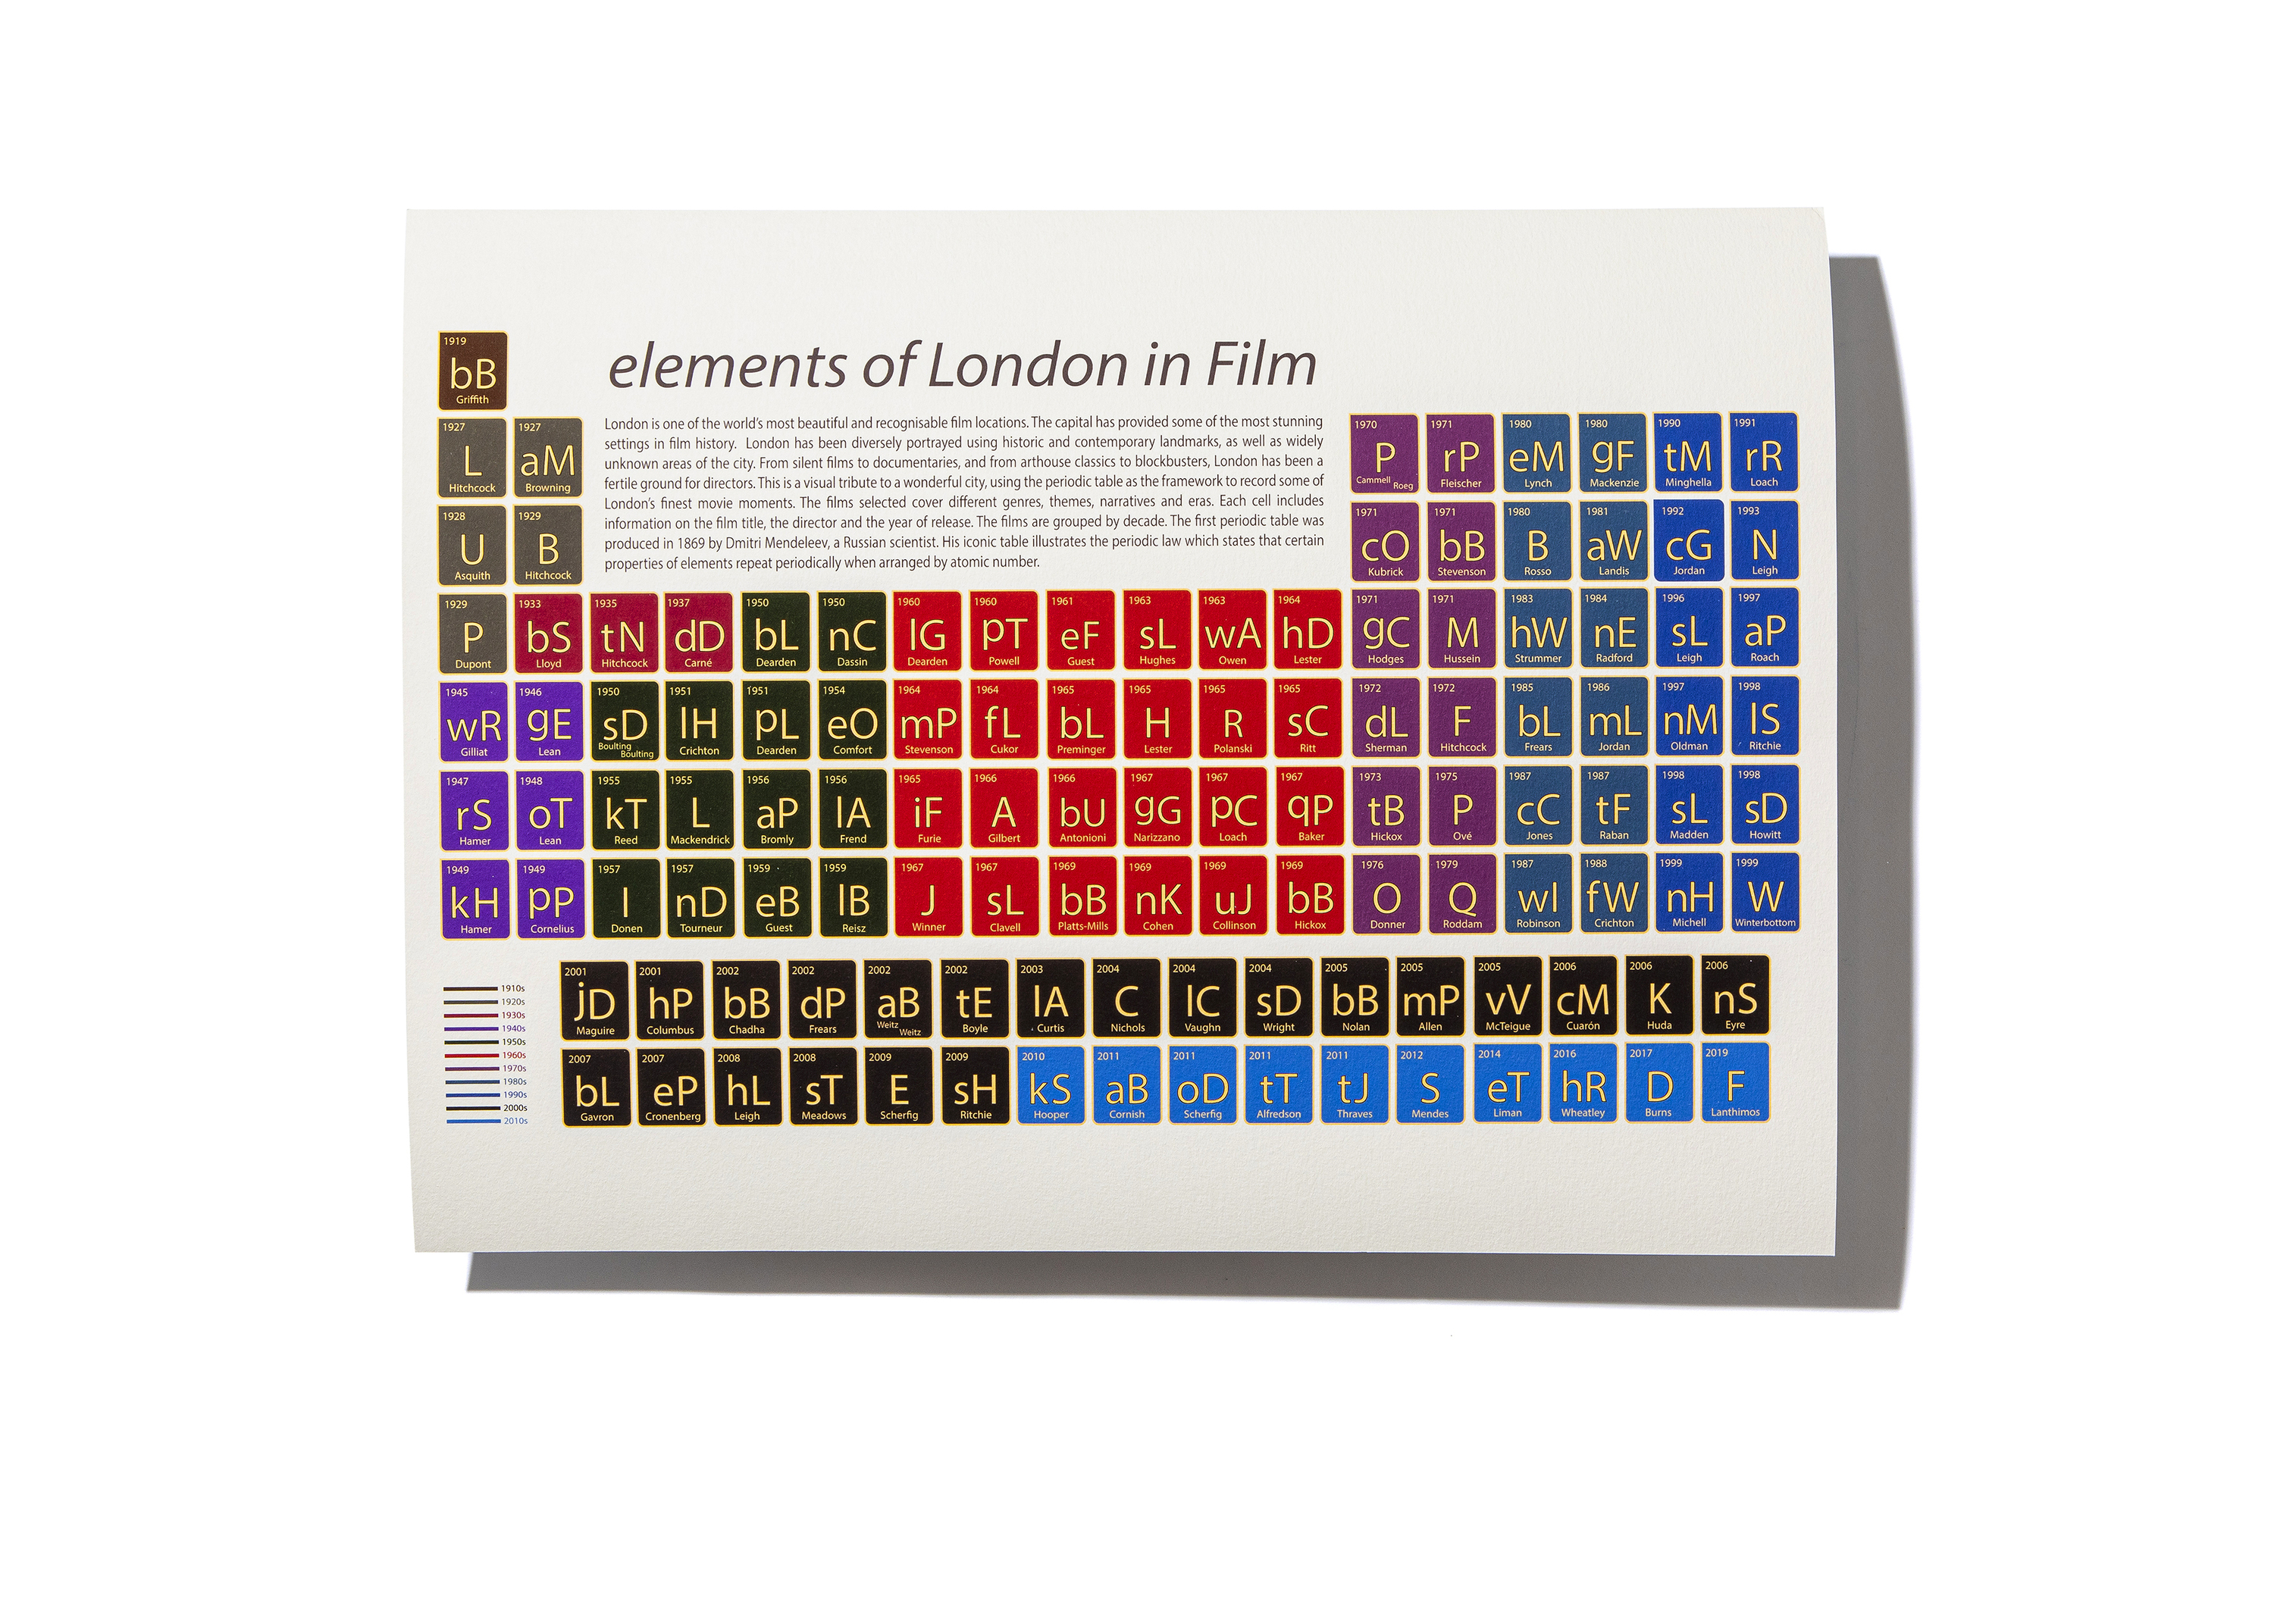 Elements of London